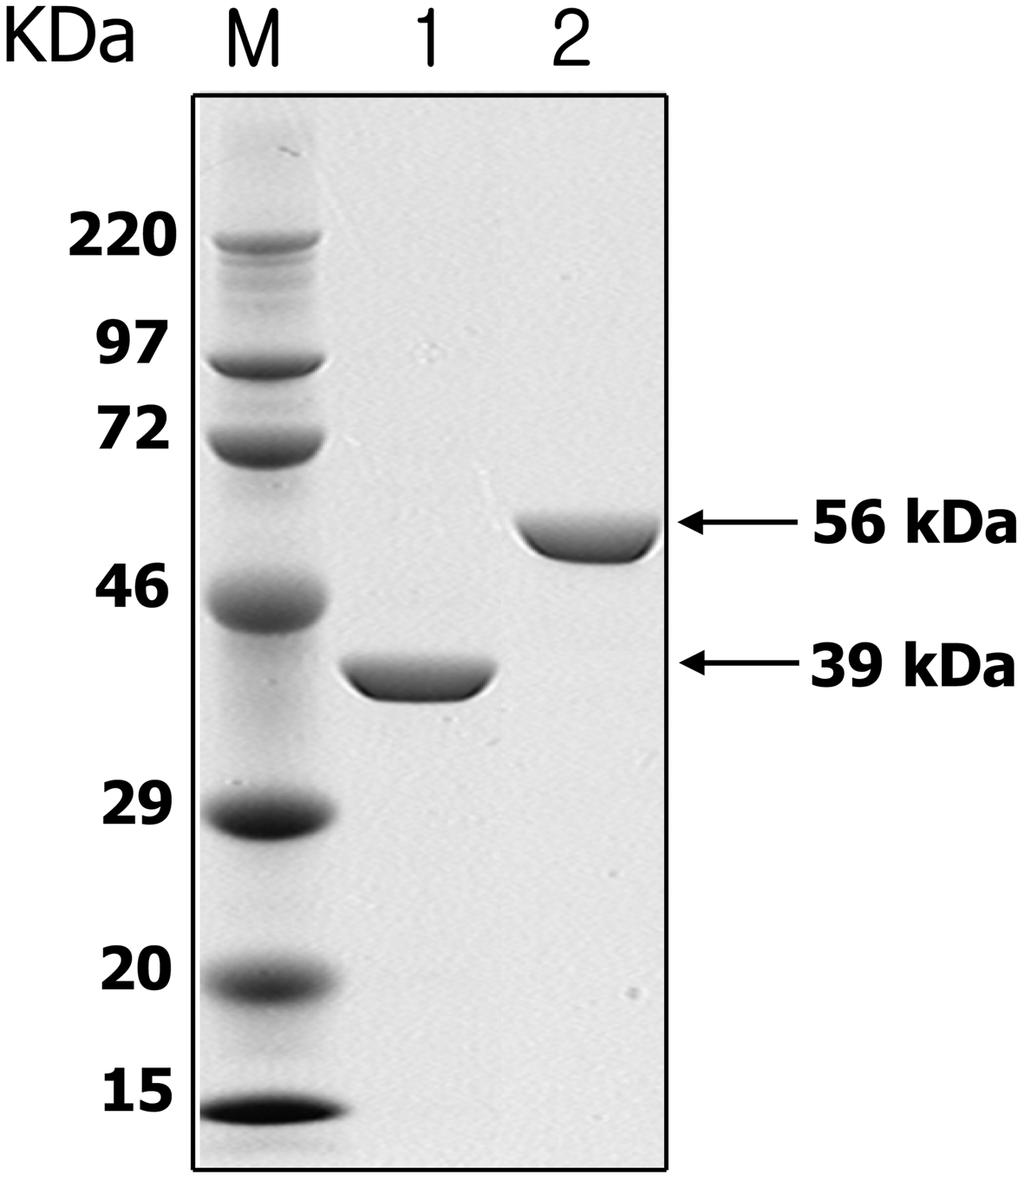 P Fig. 3. SDS-PAGE analysis of the purified yeast G247S proteins.